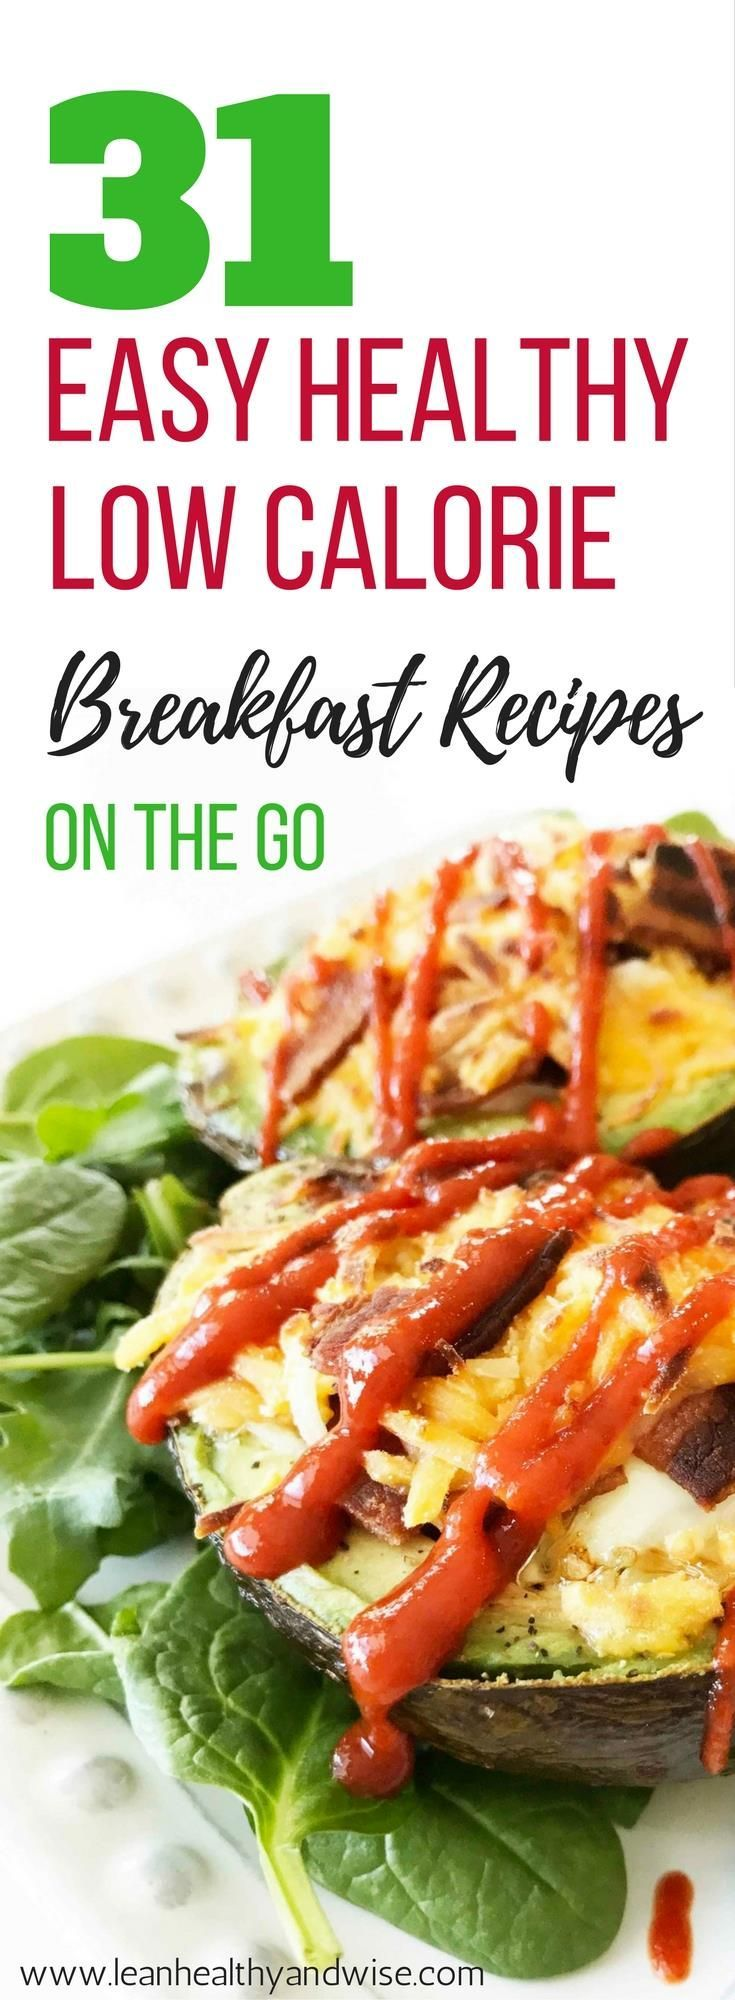 Here are some quick and healthy low calorie breakfast recipes on the go that are great for weight loss and contain fewer than 300 calories. via /leanhealthywise/